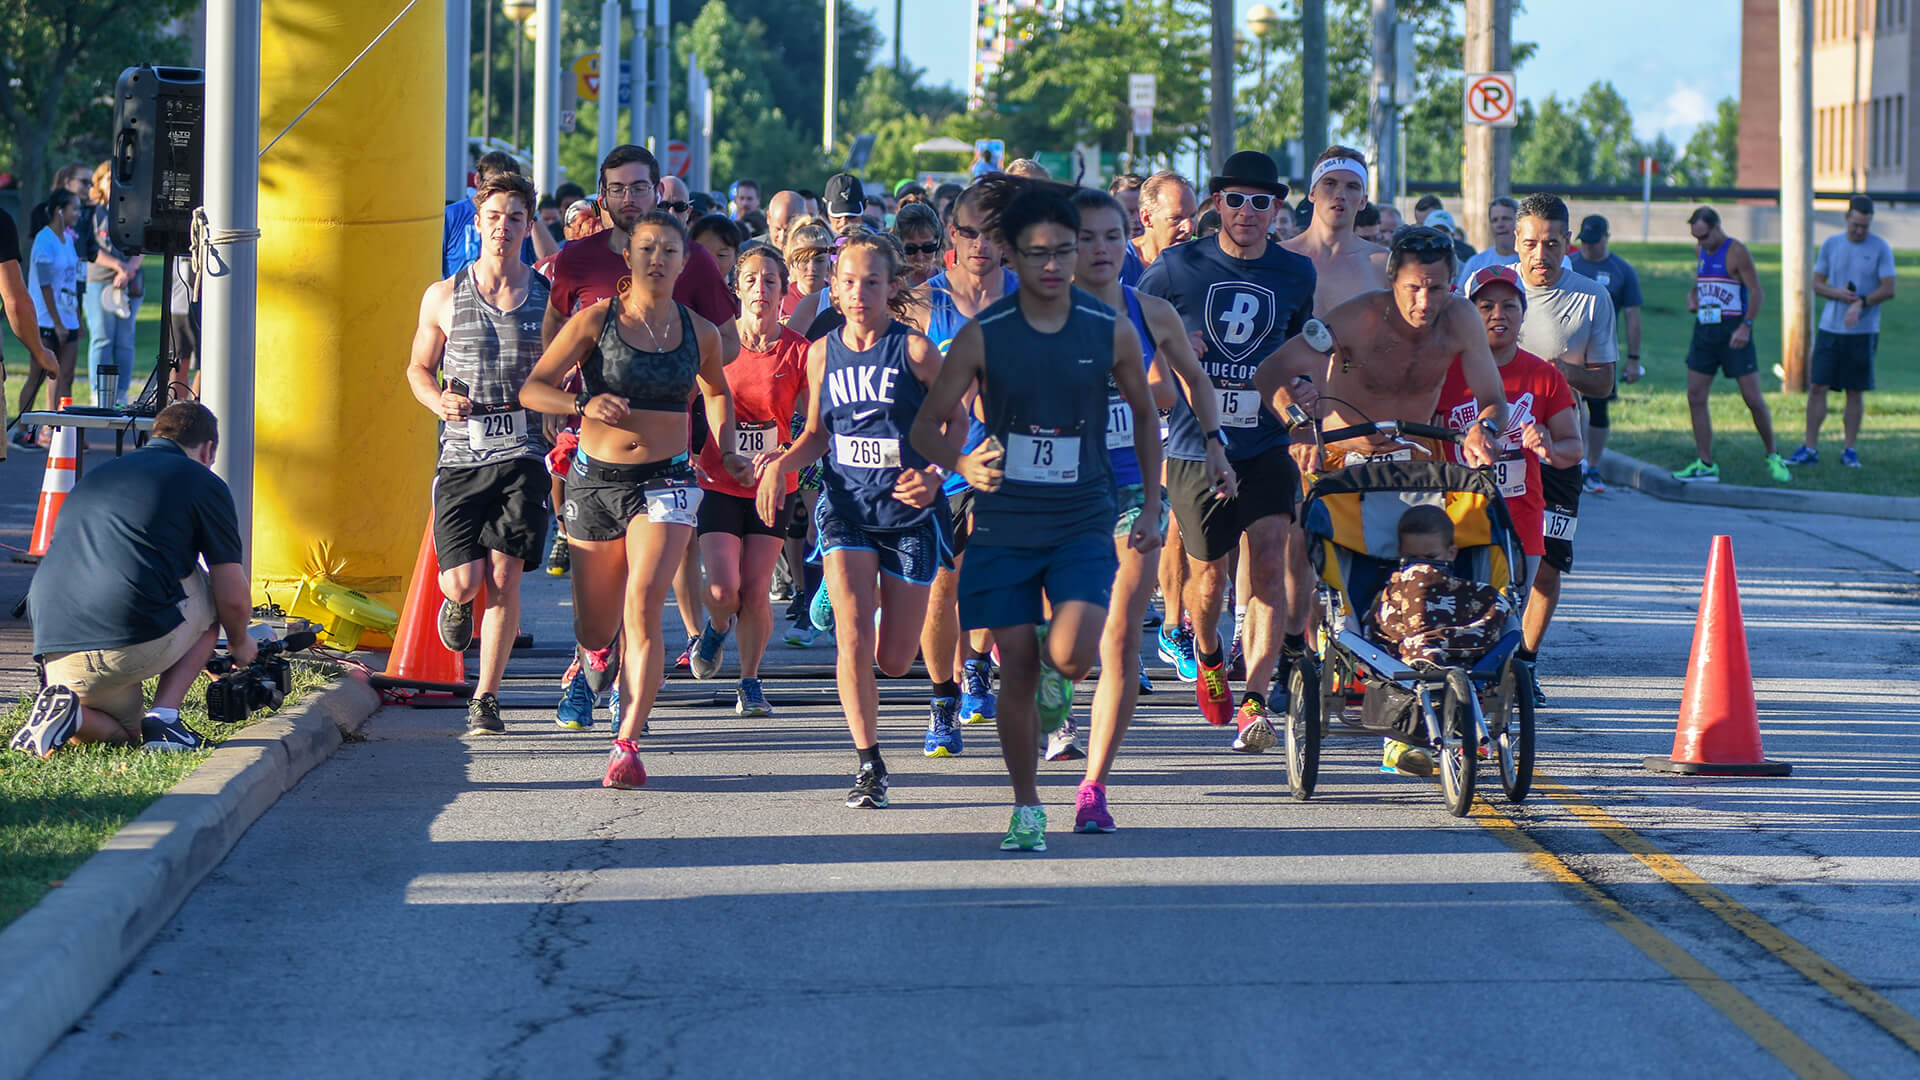 Fitness-focused Street Beat 5K returns to World Championship festivities